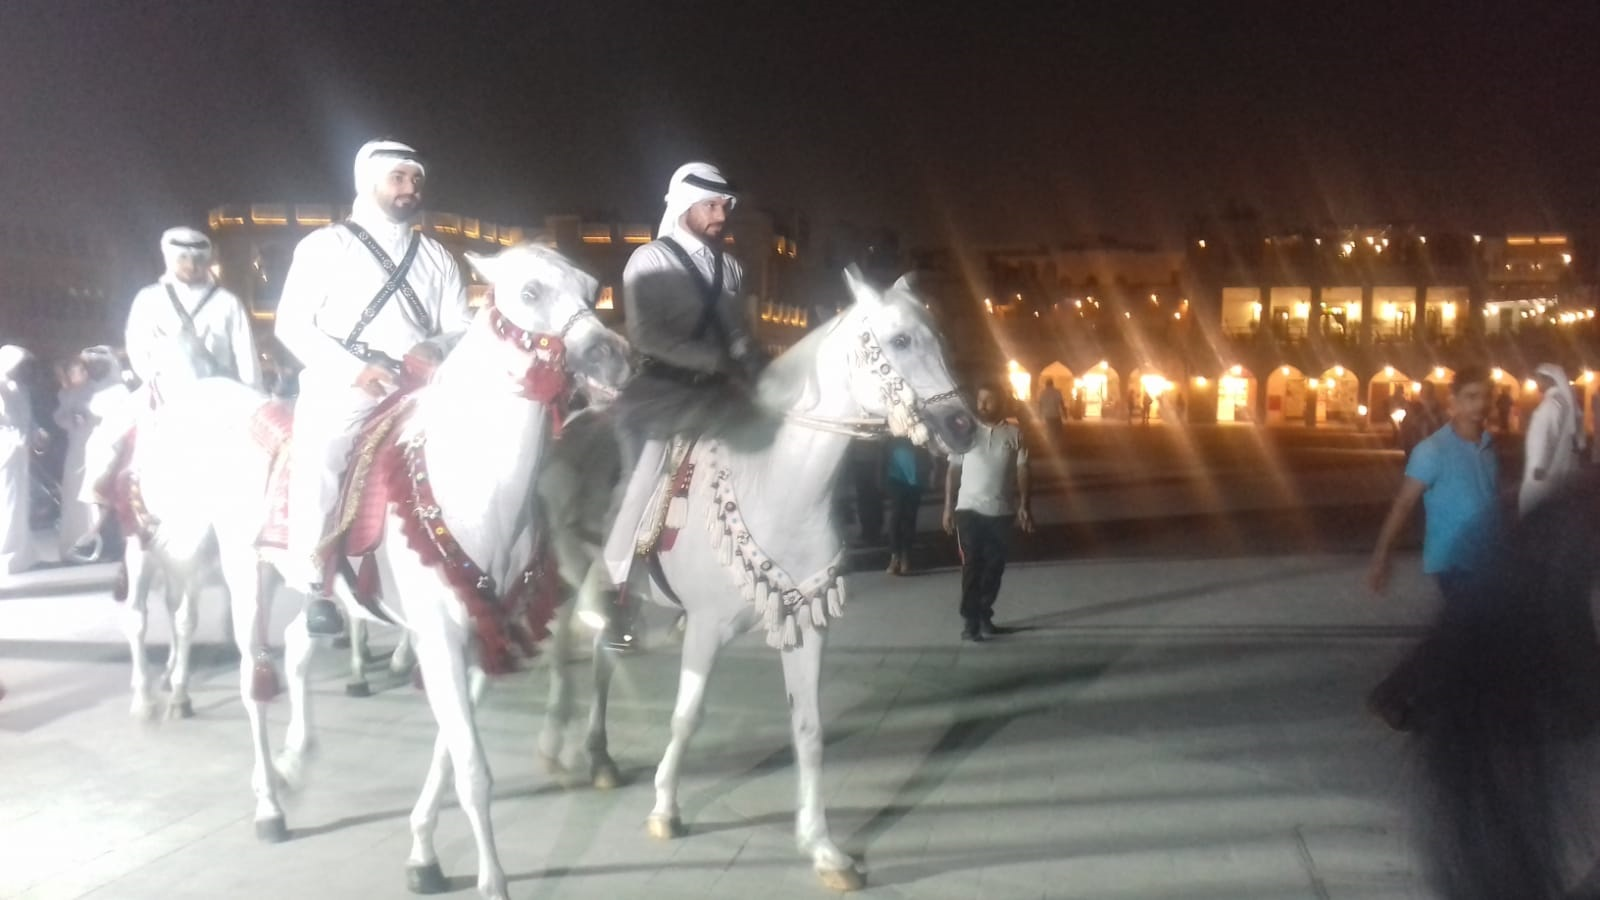 A horse parade circling the ground overlooking the Msheireb building at Souq Waqif before the unveiling of the FIFA 2022 emblem.